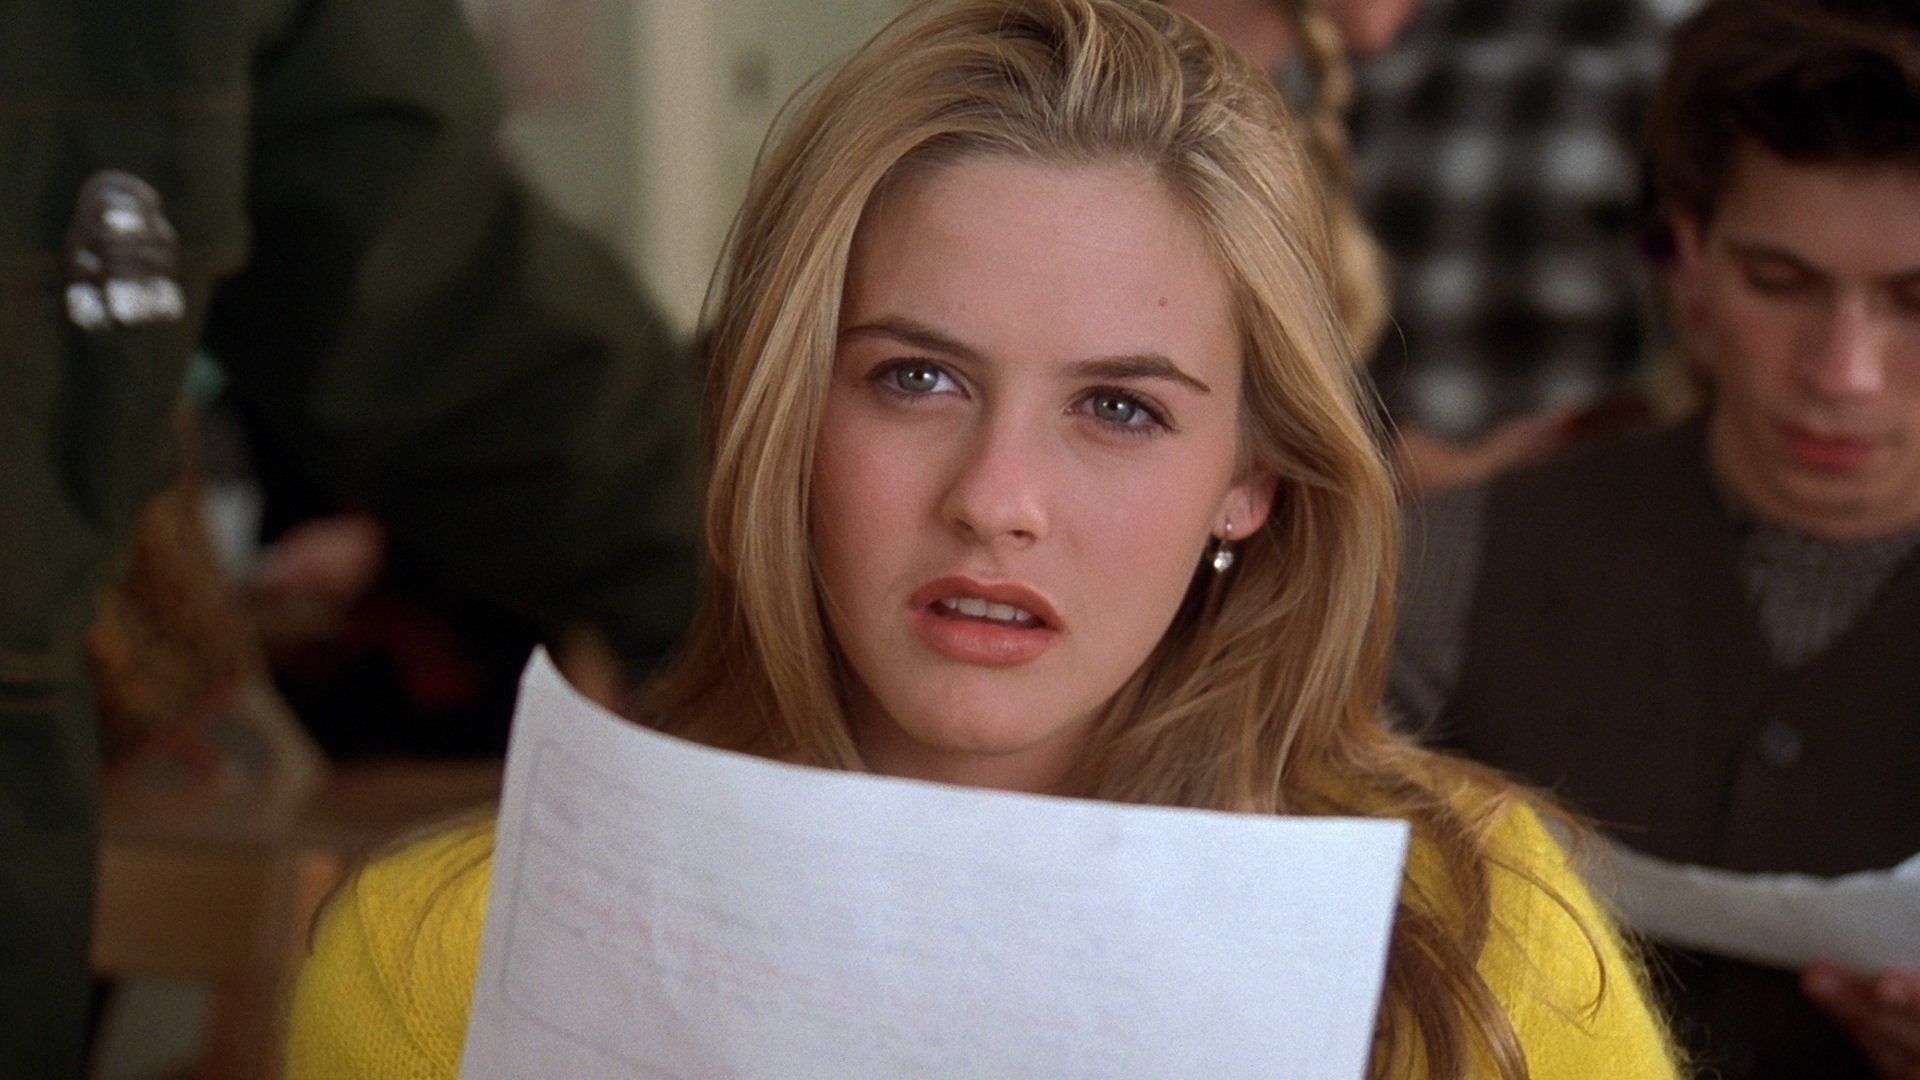 "The Shadow In Film: Cher Horowitz, Clueless. Cher is the selfish, vain, and superficial daughter of a wealthy Beverly Hills attorney whose only direction in life is ""toward the mall"". A series of mishaps compels her to reflects on her priorities and her repeated failures to understand or appreciate the people in her life."